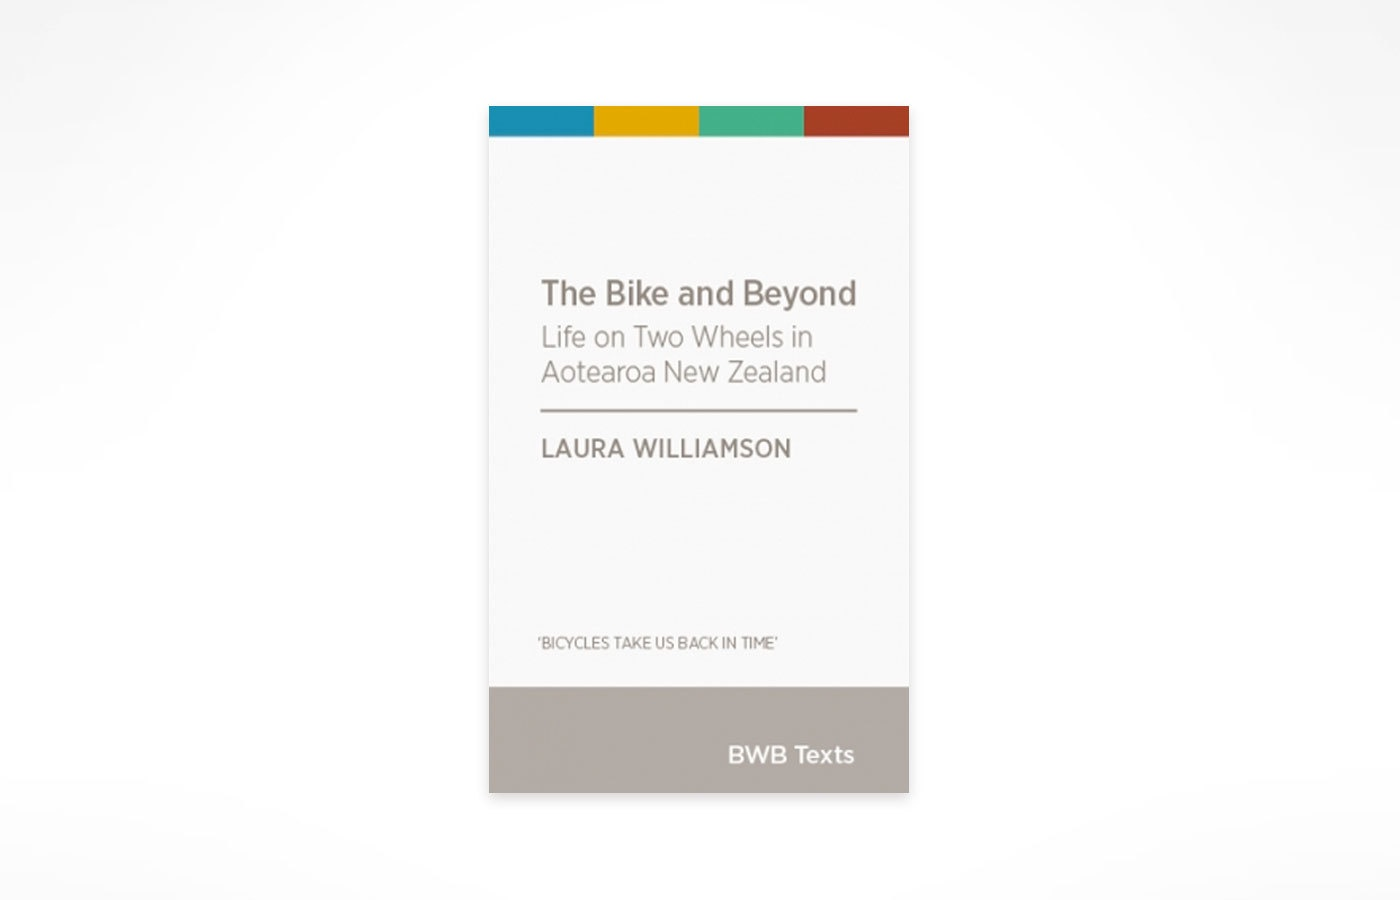 The Bike and Beyond - Laura Williamson